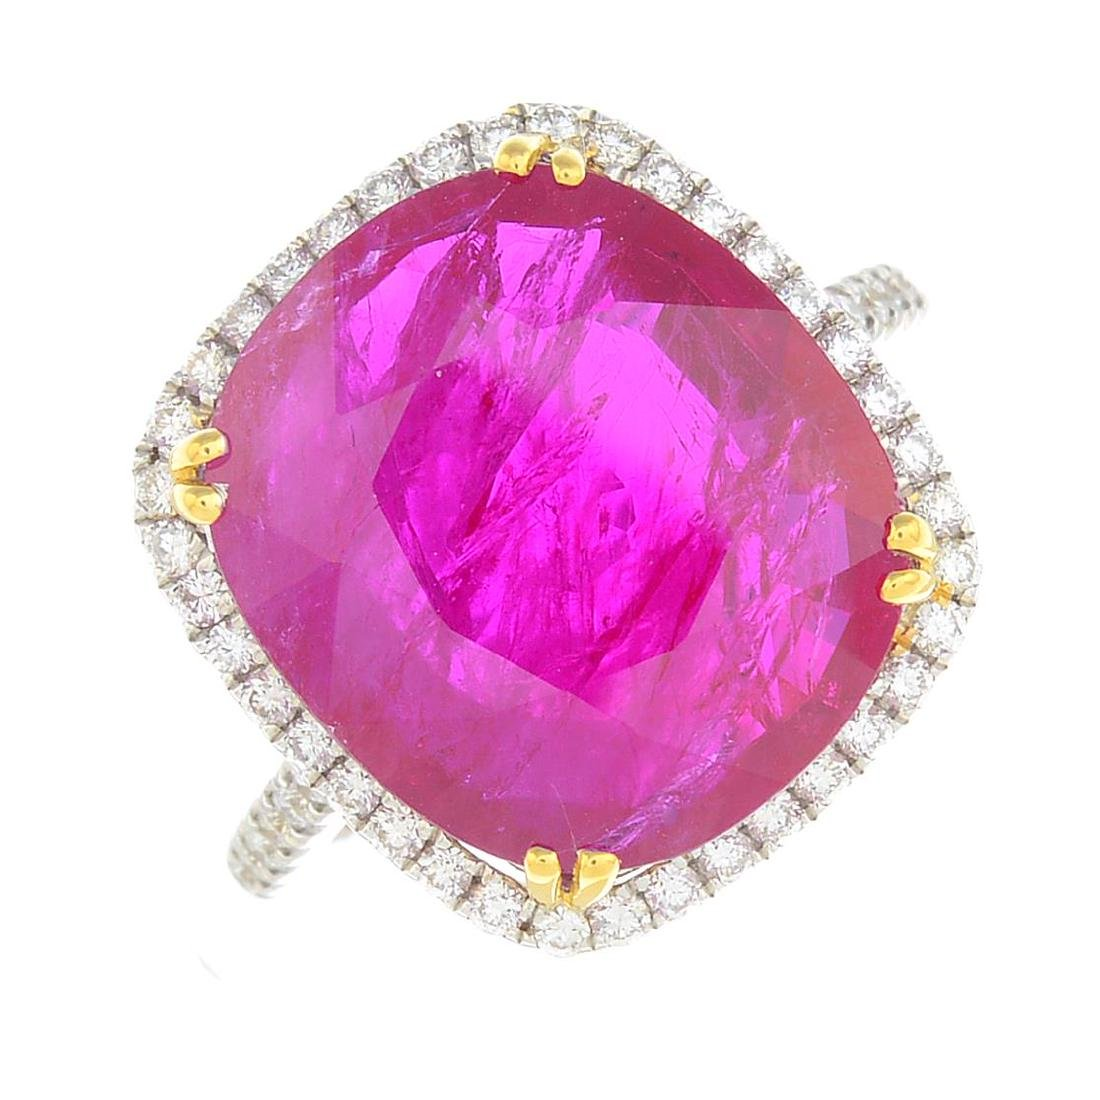 A ruby and diamond cluster ring. The cushion-shape